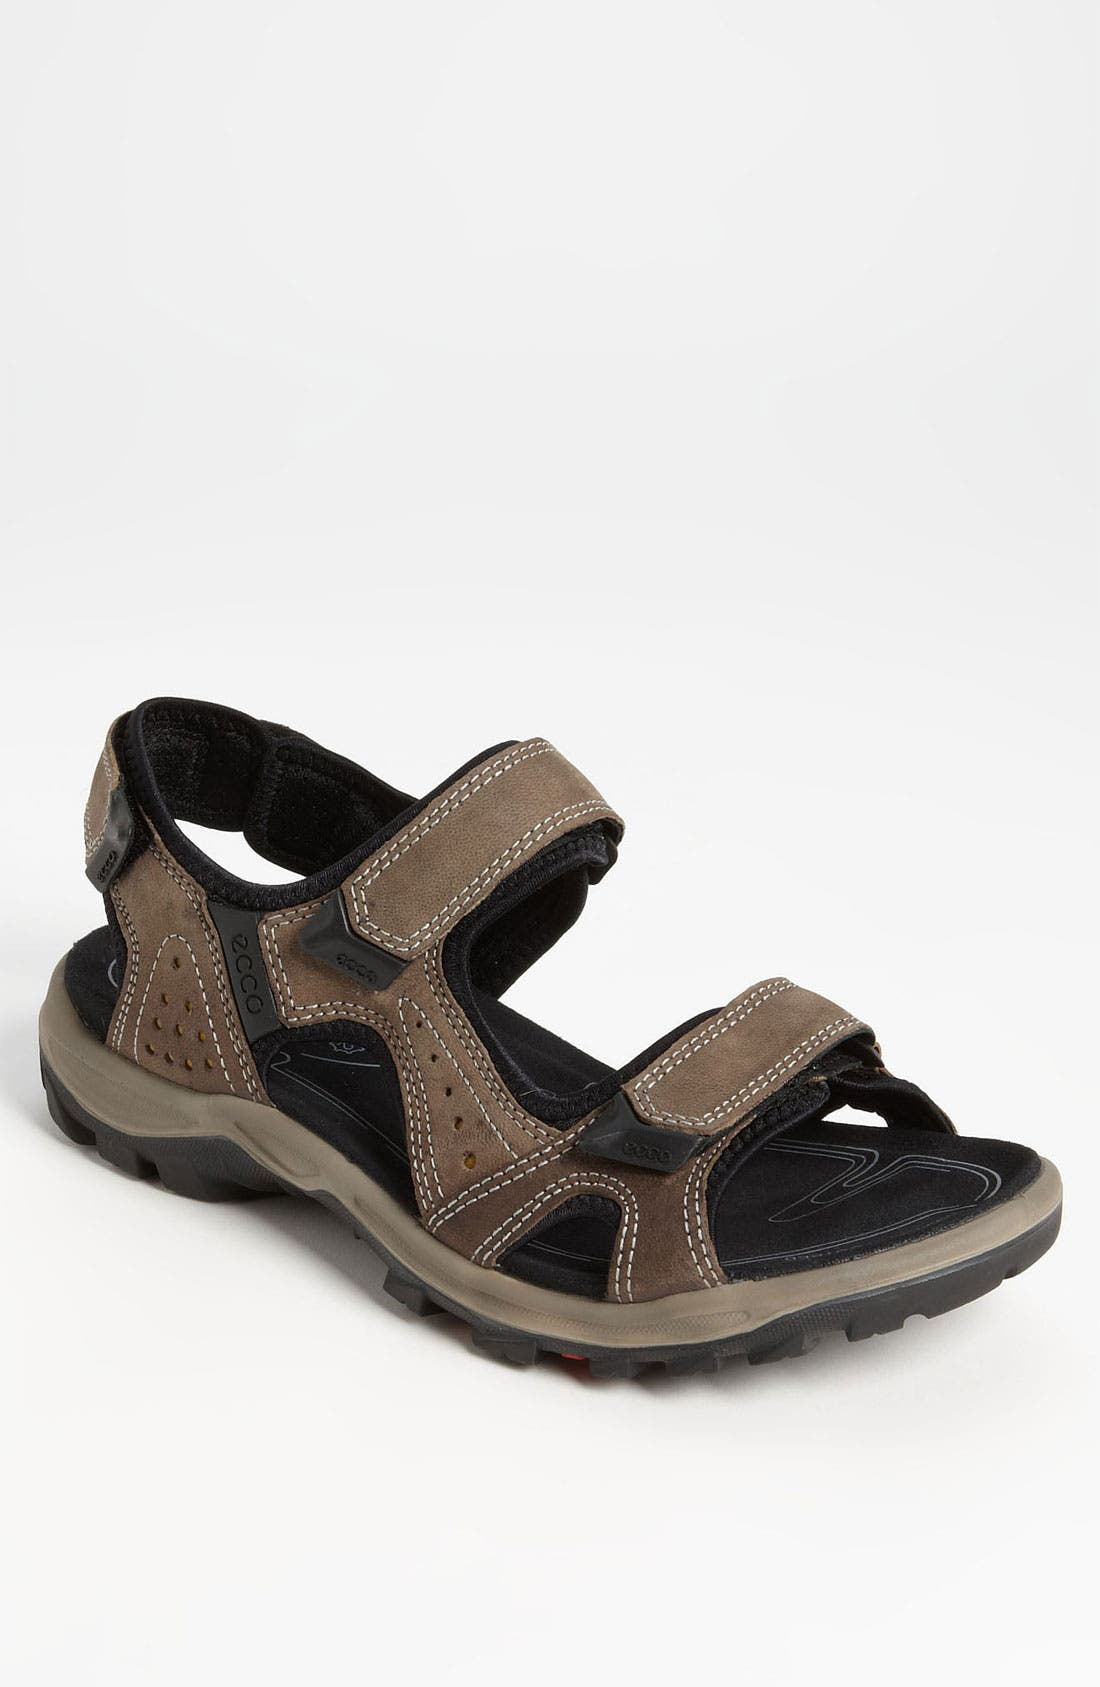 Alternate Image 1 Selected - ECCO 'Cheja' Sandal (Men)